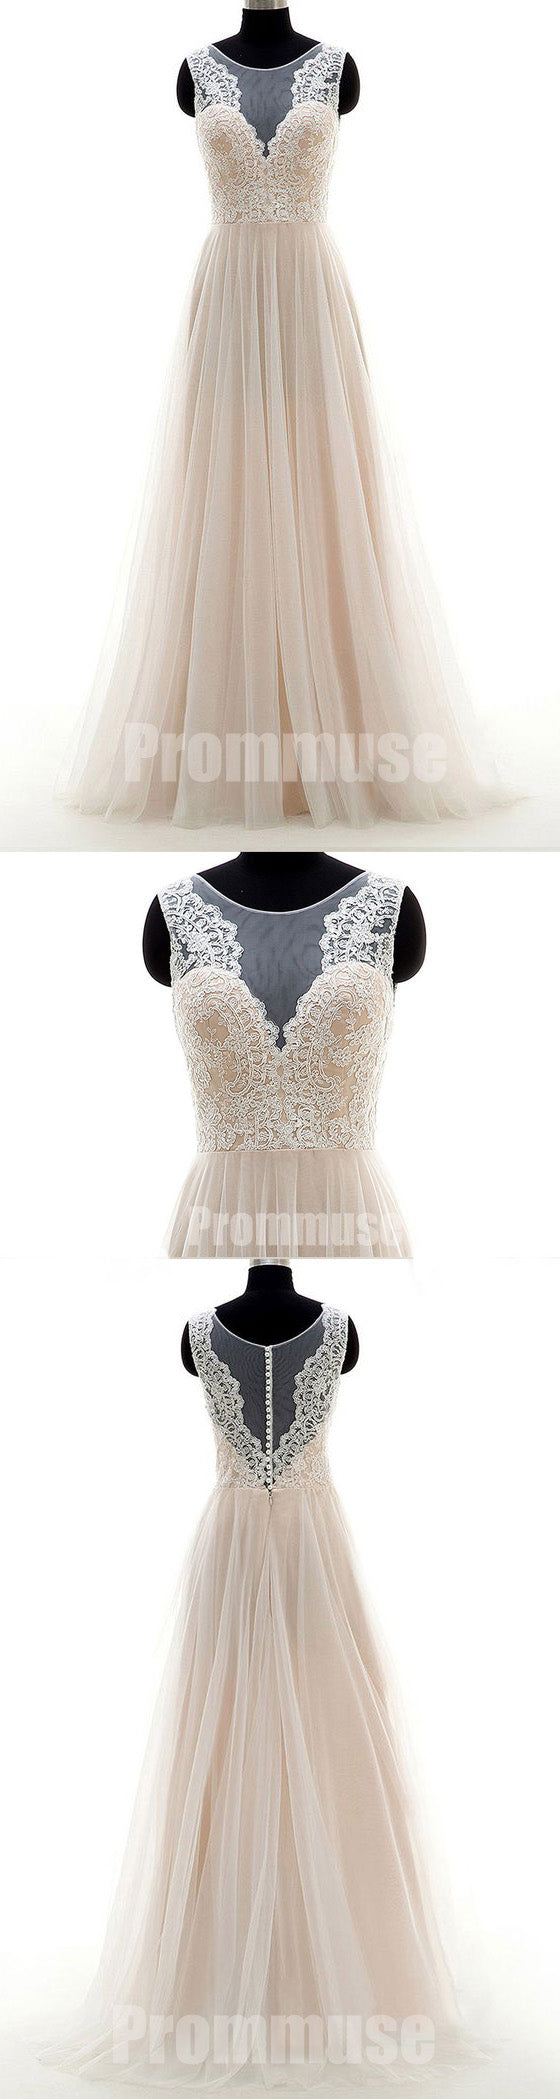 Elegant Tulle Lace Formal Online Cheap Wedding Long Prom Dresses, PM0792